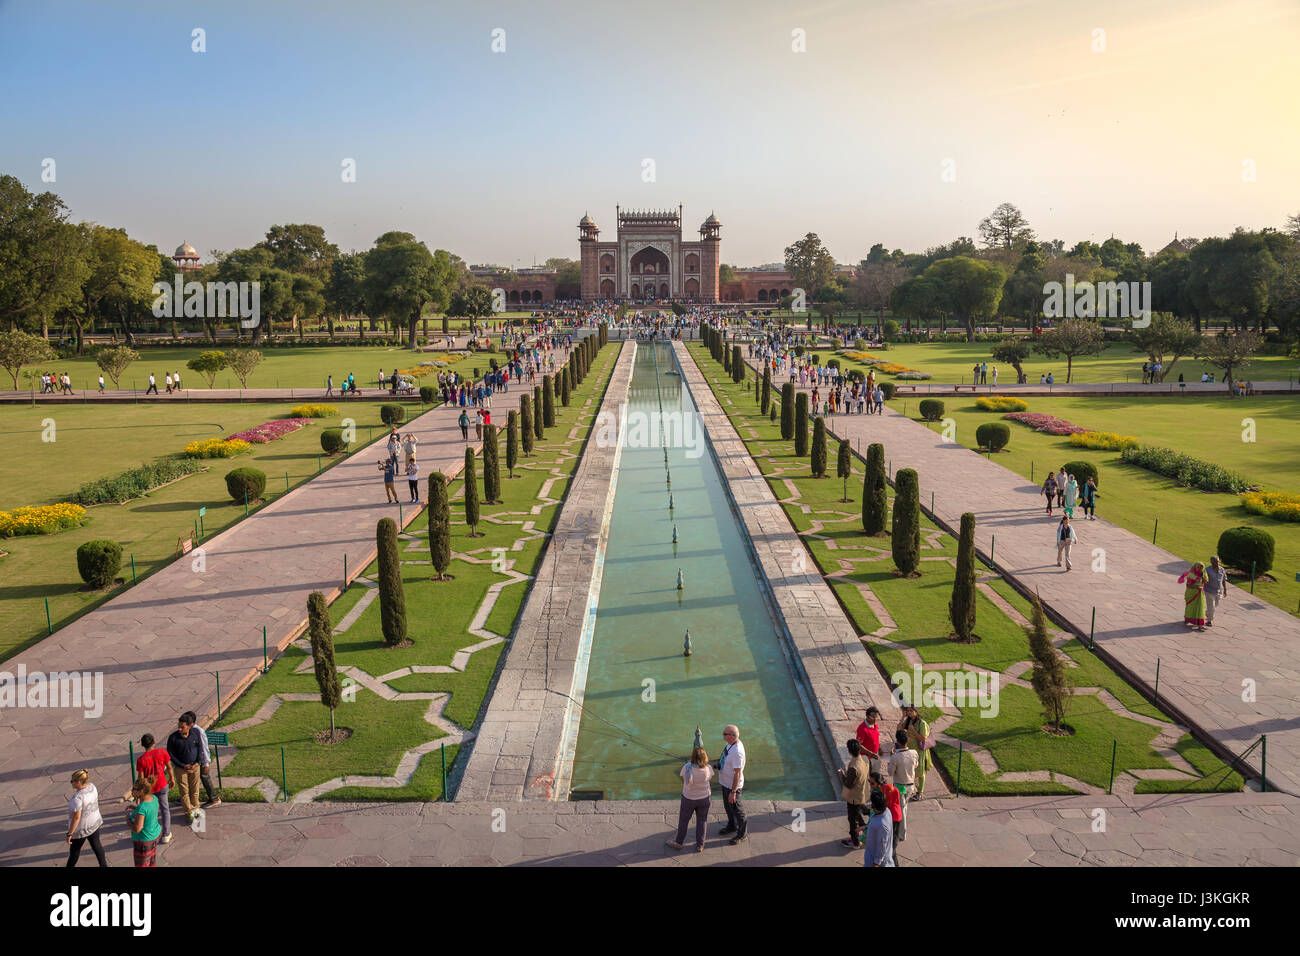 Taj Mahal garden with tourists and red sandstone built Mughal architectural East gate as viewed from the top of - Stock Image